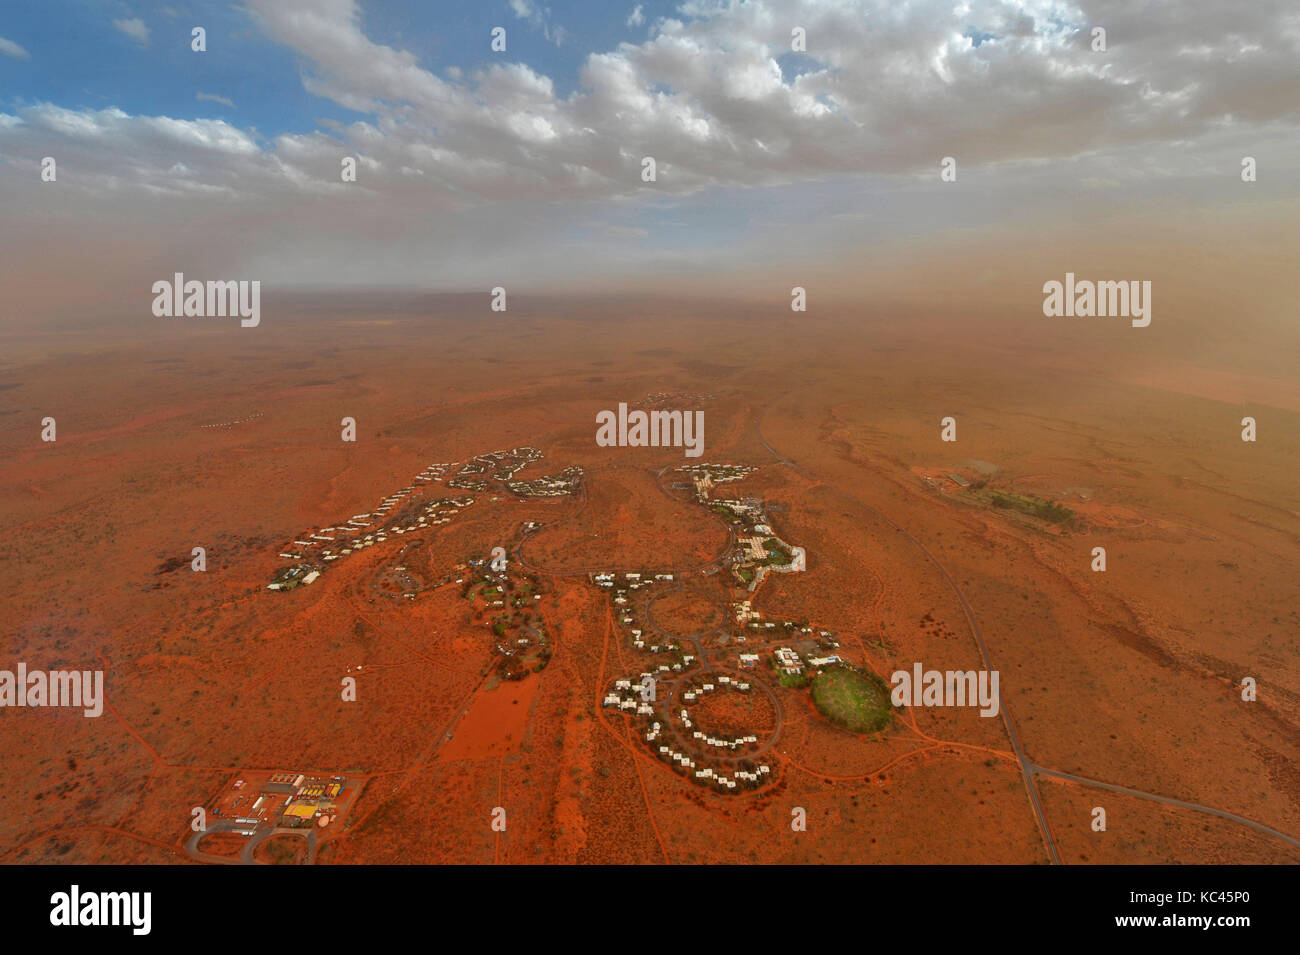 Aerial view of the village of Yulara at Uluru (Ayres Rock) in Australia's Northern Territory, at sunset. - Stock Image